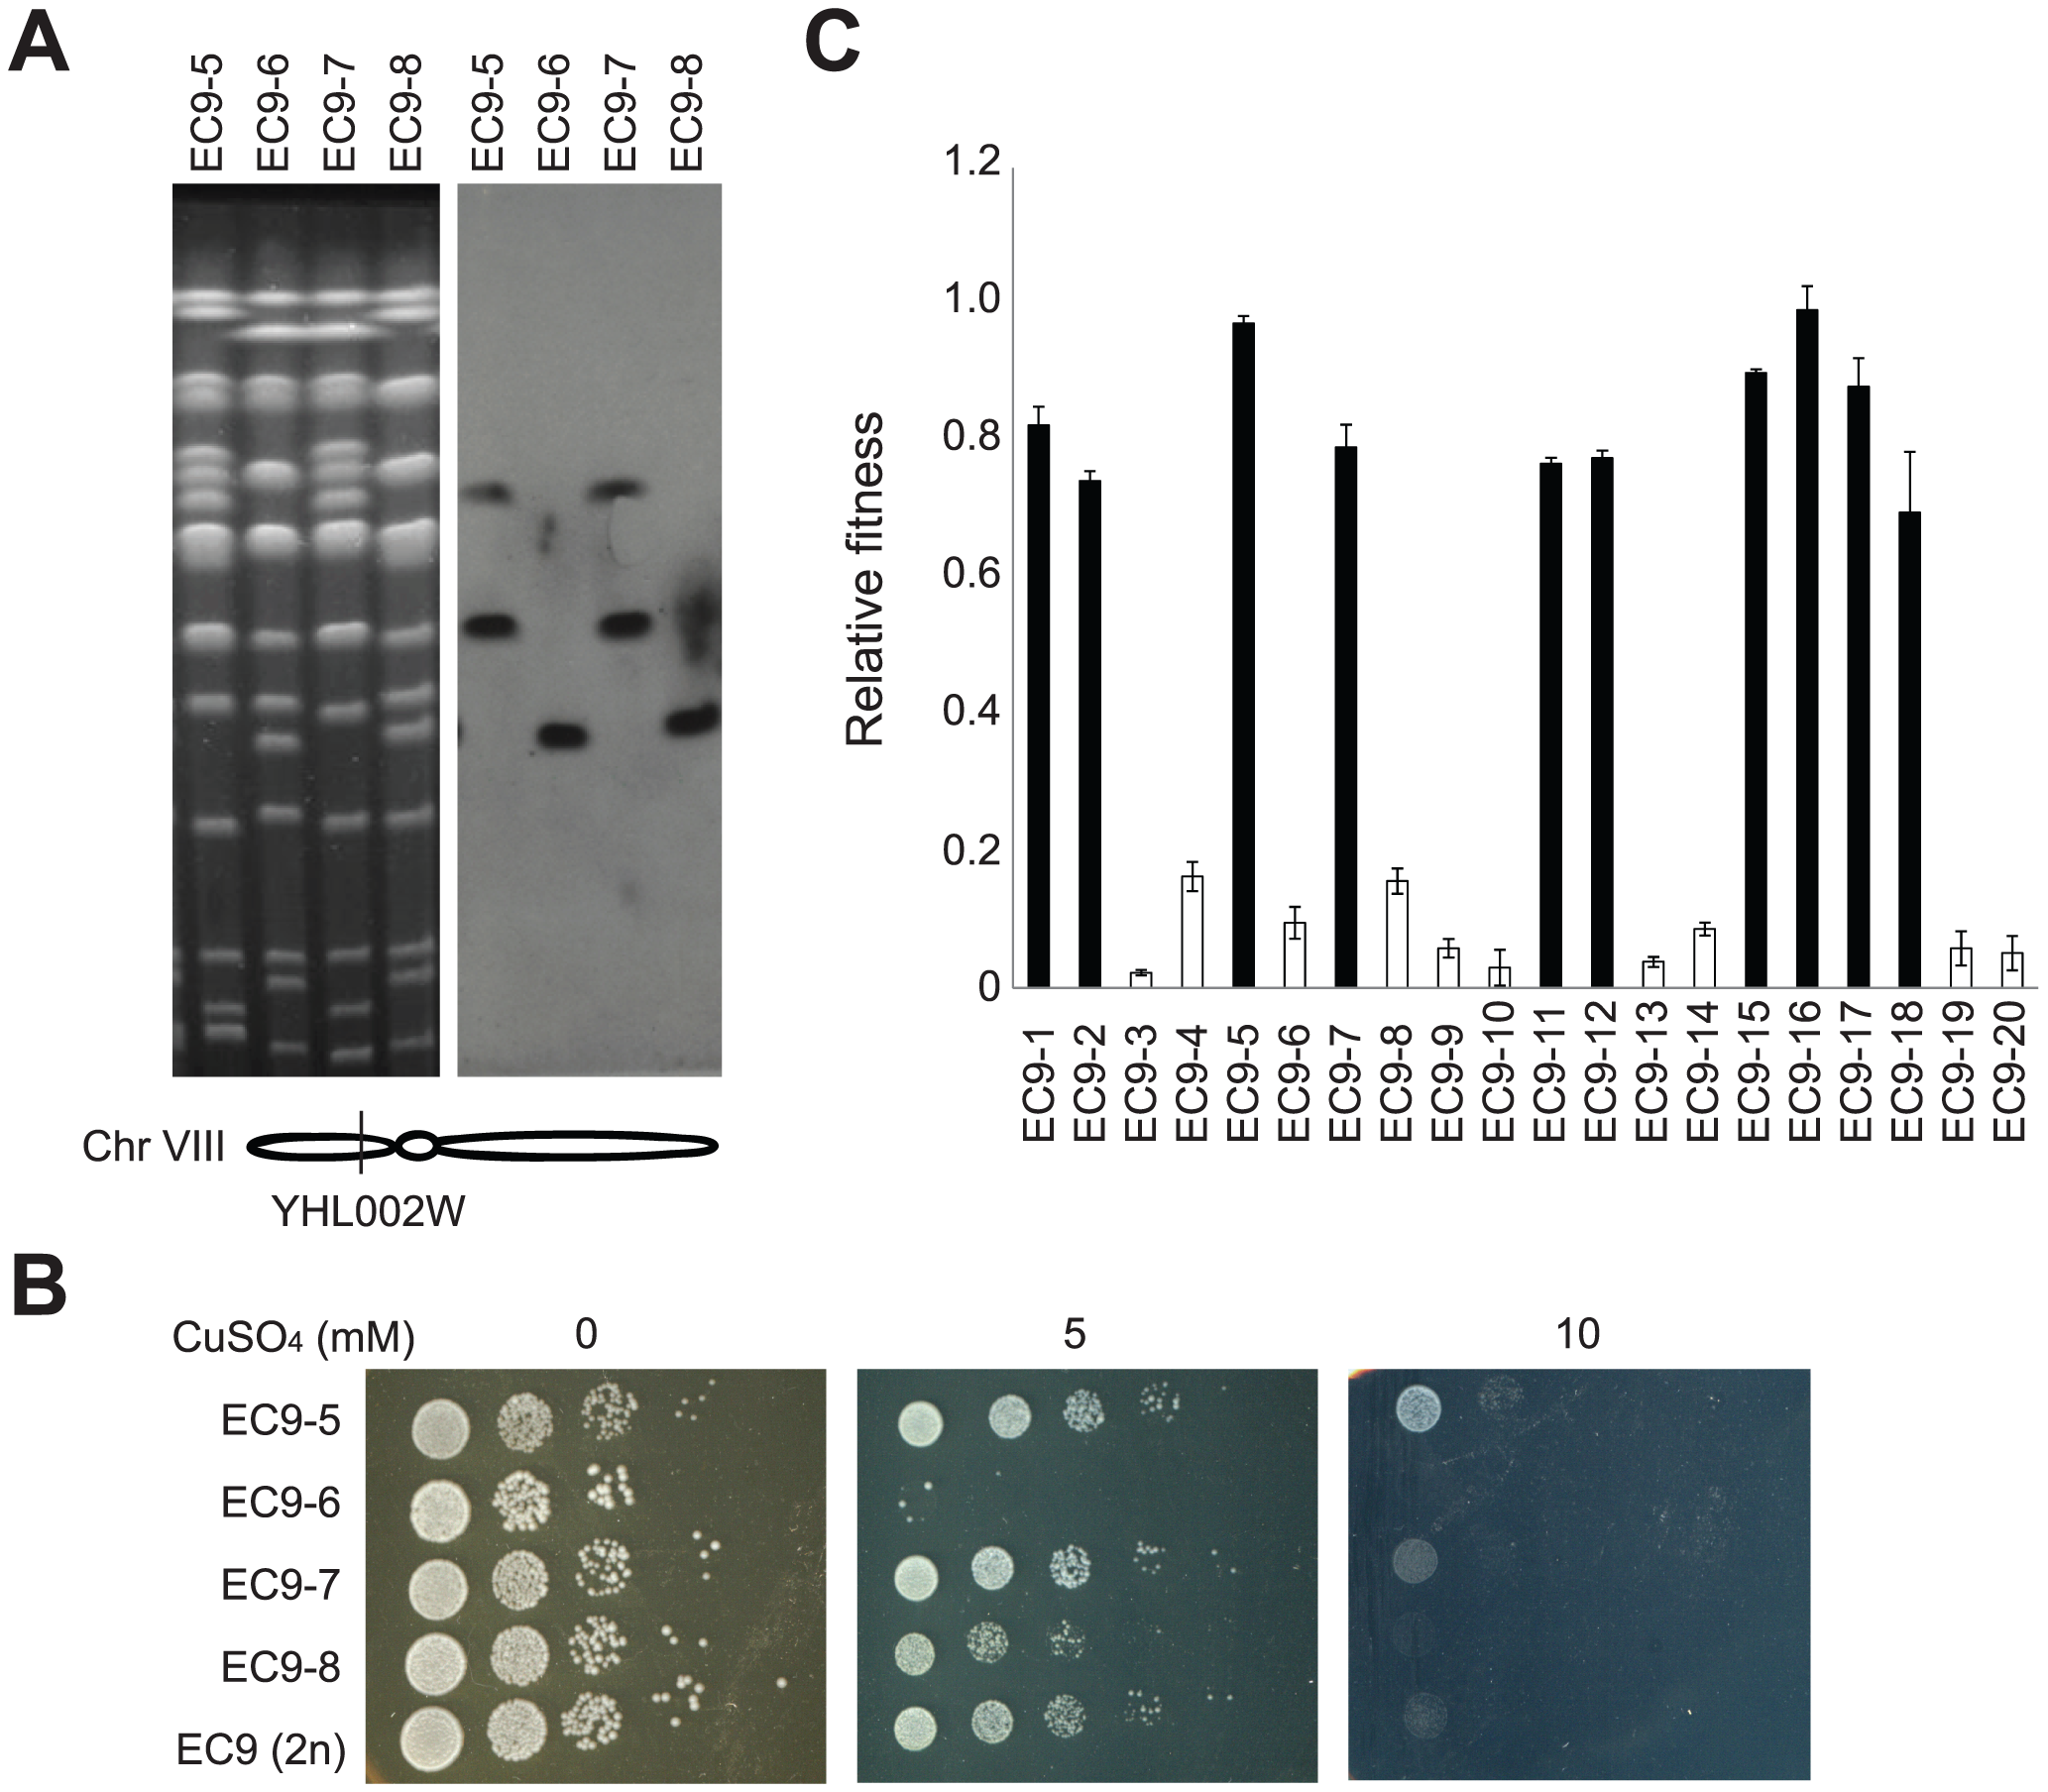 Haploid segregants of EC9 carrying rearranged chromosomes are more tolerant to copper.